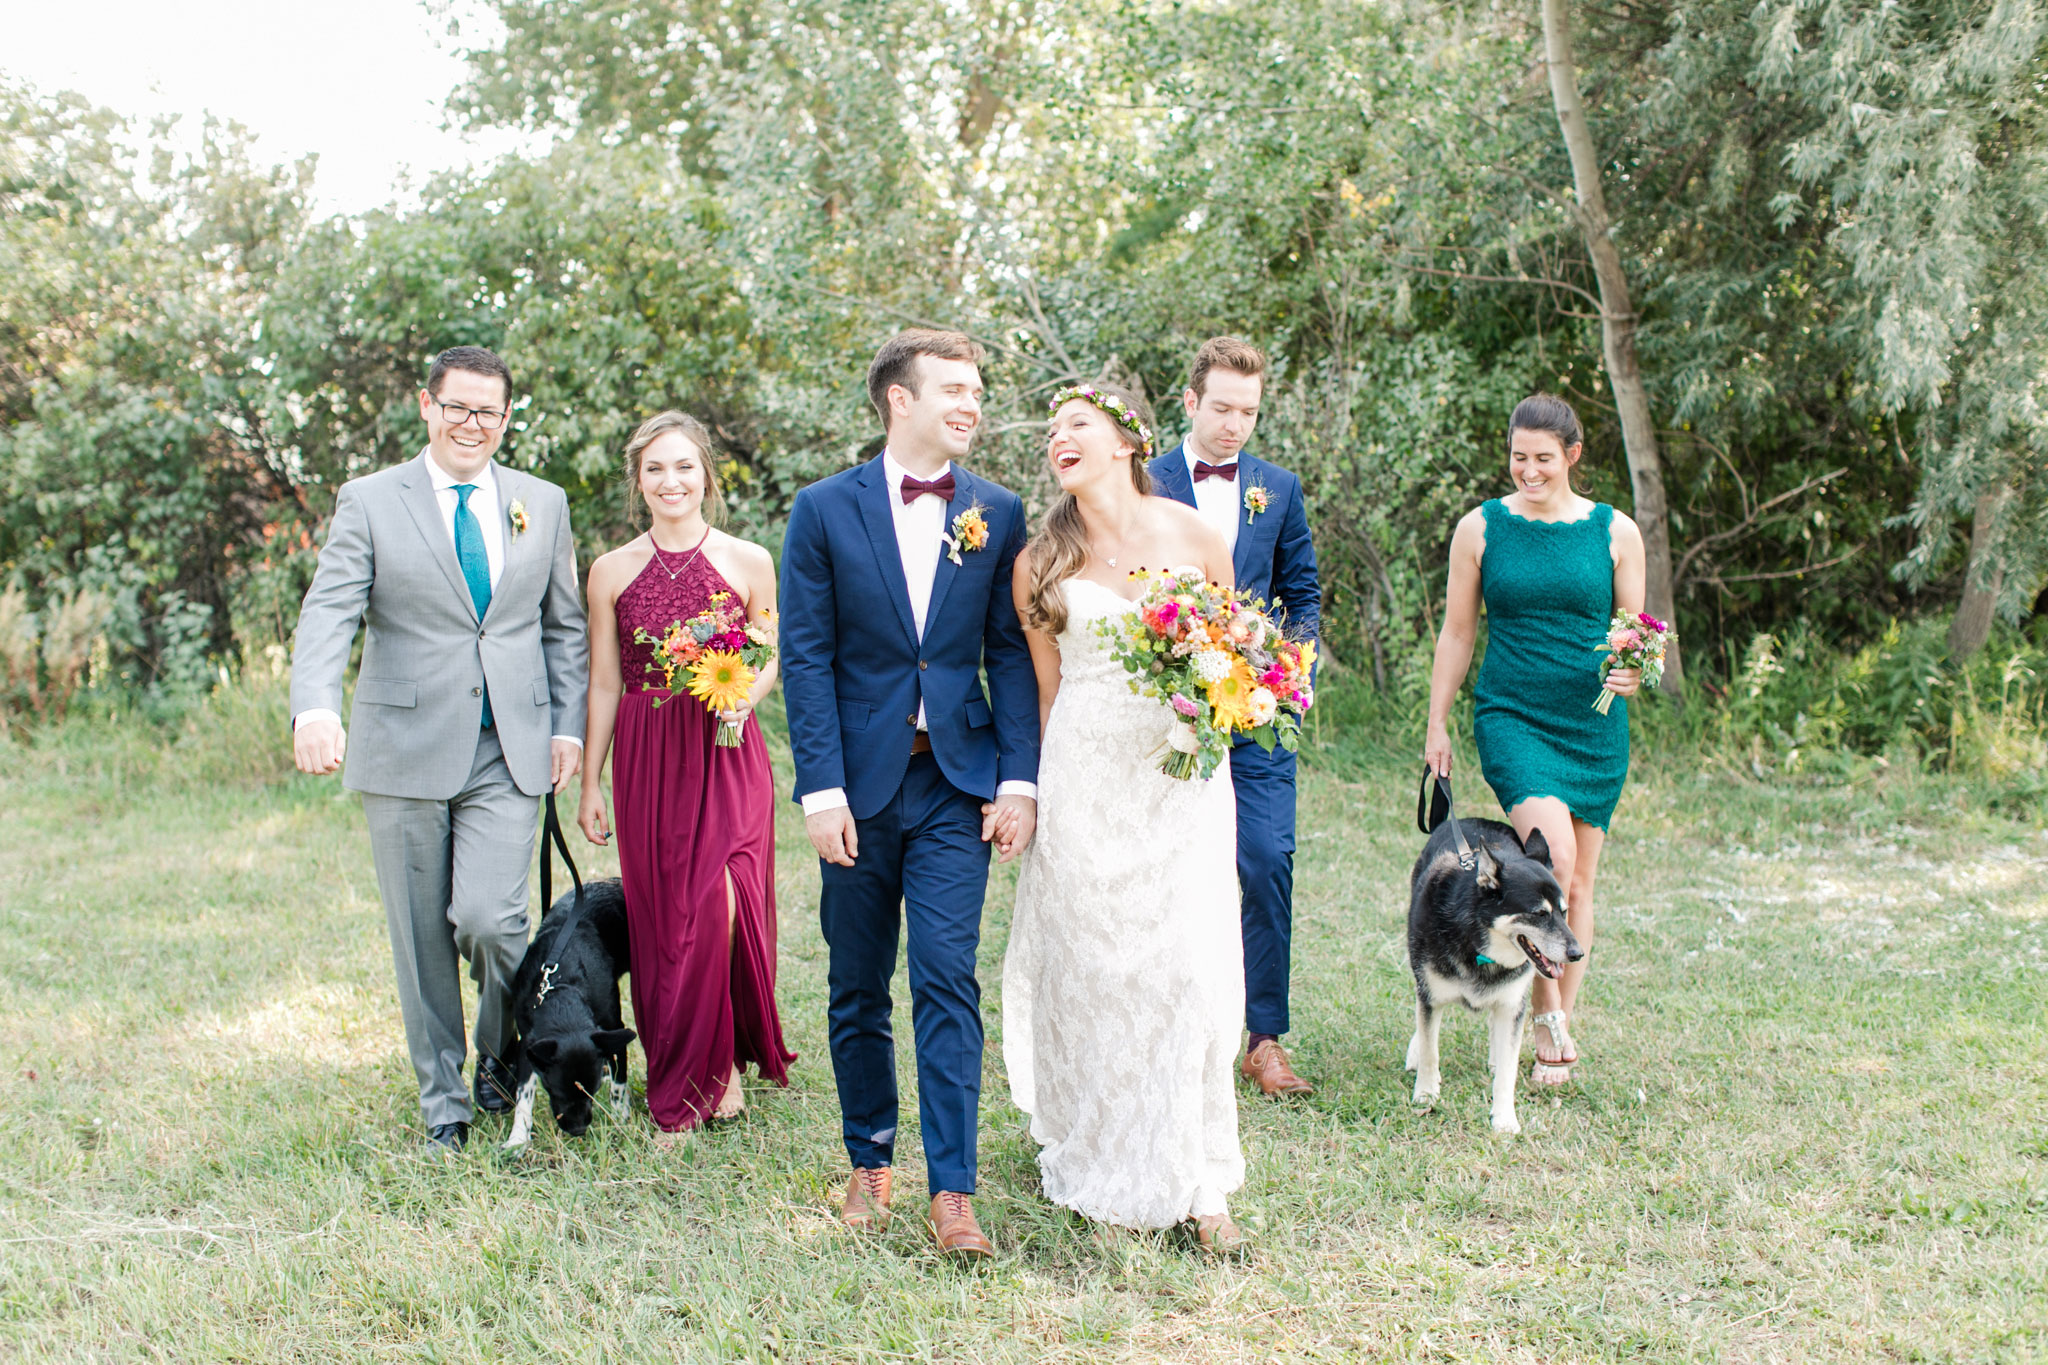 Wedding Party | A Boho Garden Wedding in Colorado